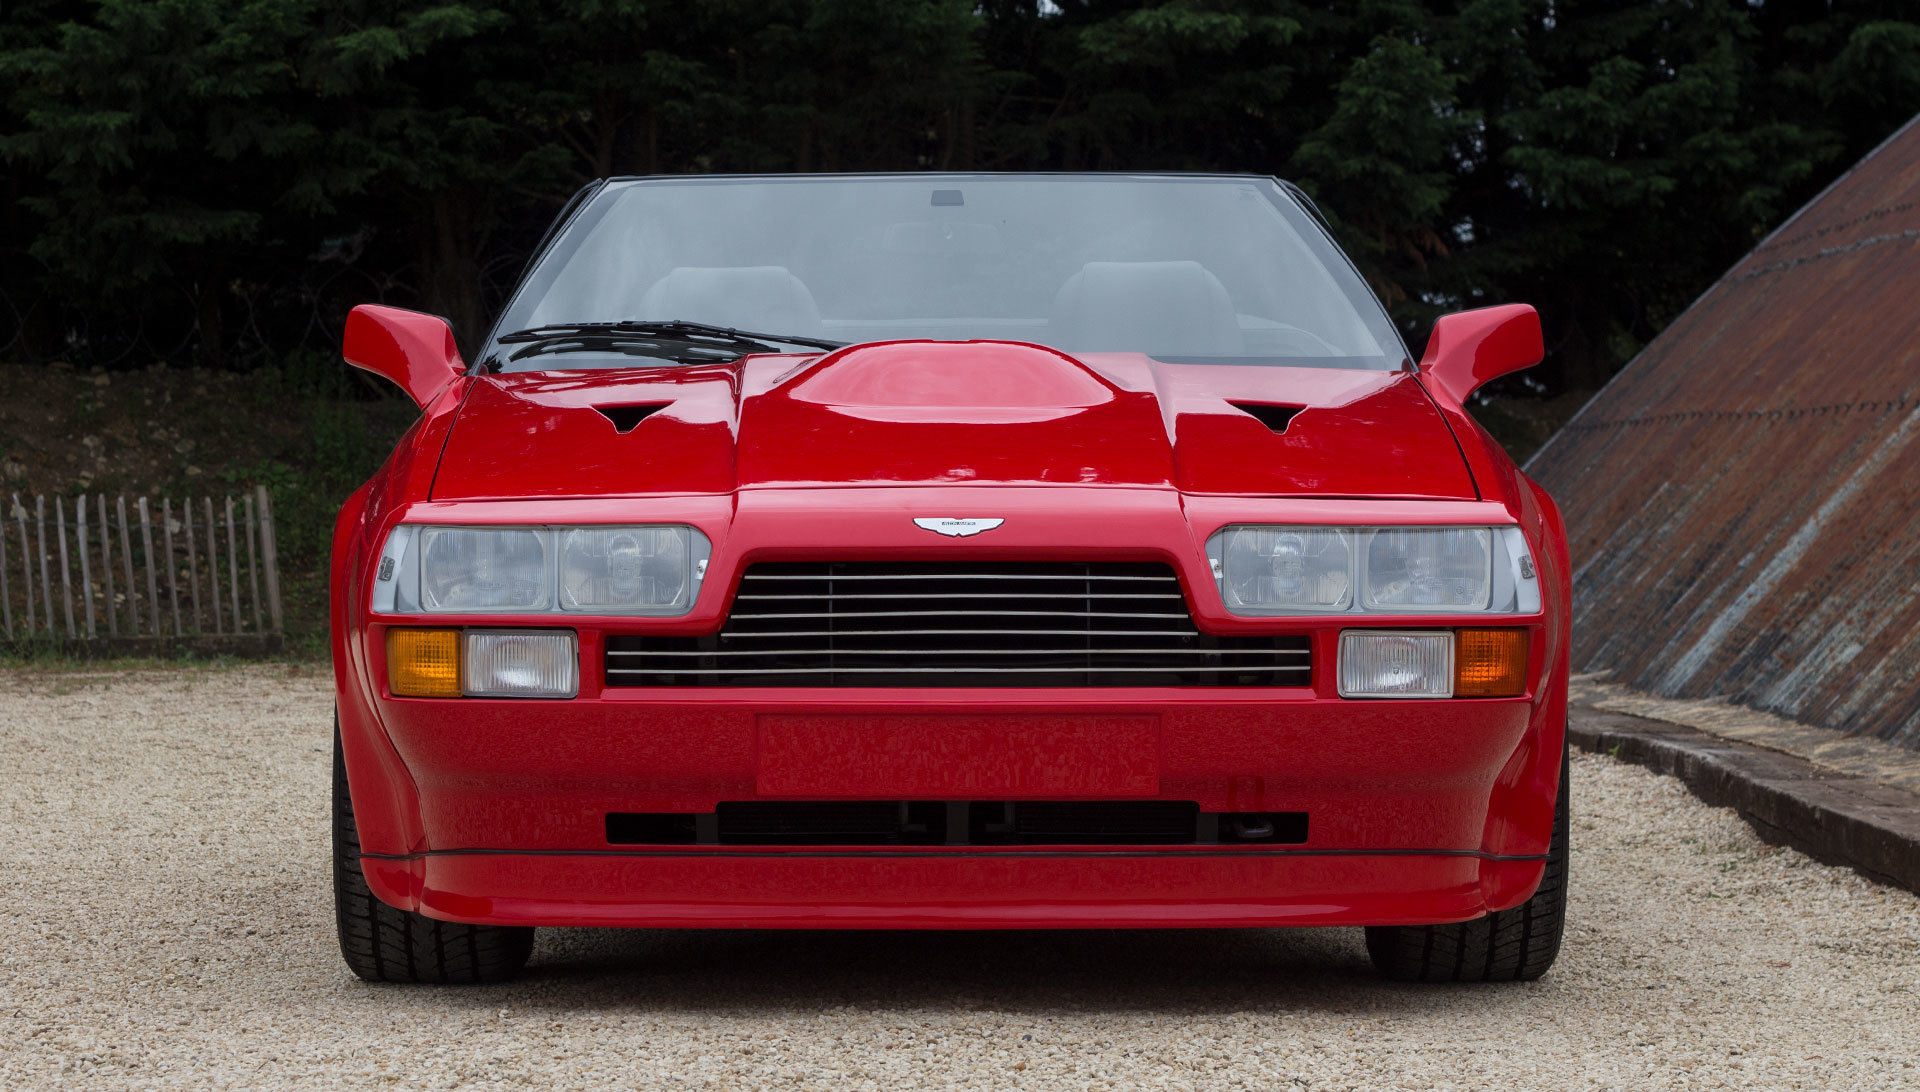 1989 Aston Martin V8 Vantage Volante Zagato - Unregistered For Sale (picture 5 of 24)